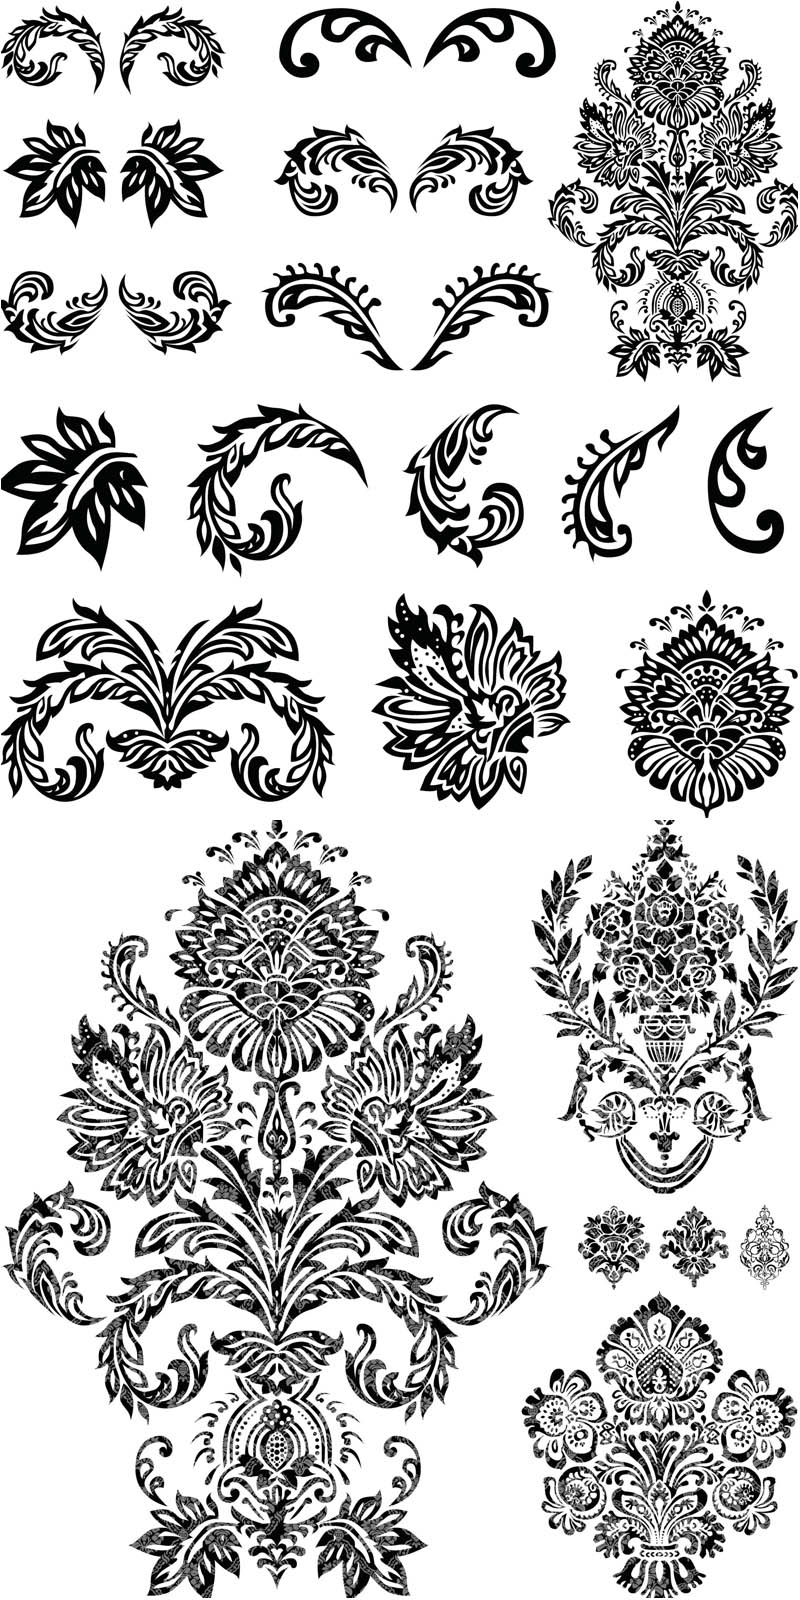 800x1600 Ornate Flourish Embellishments Vector Vector Graphics Blog